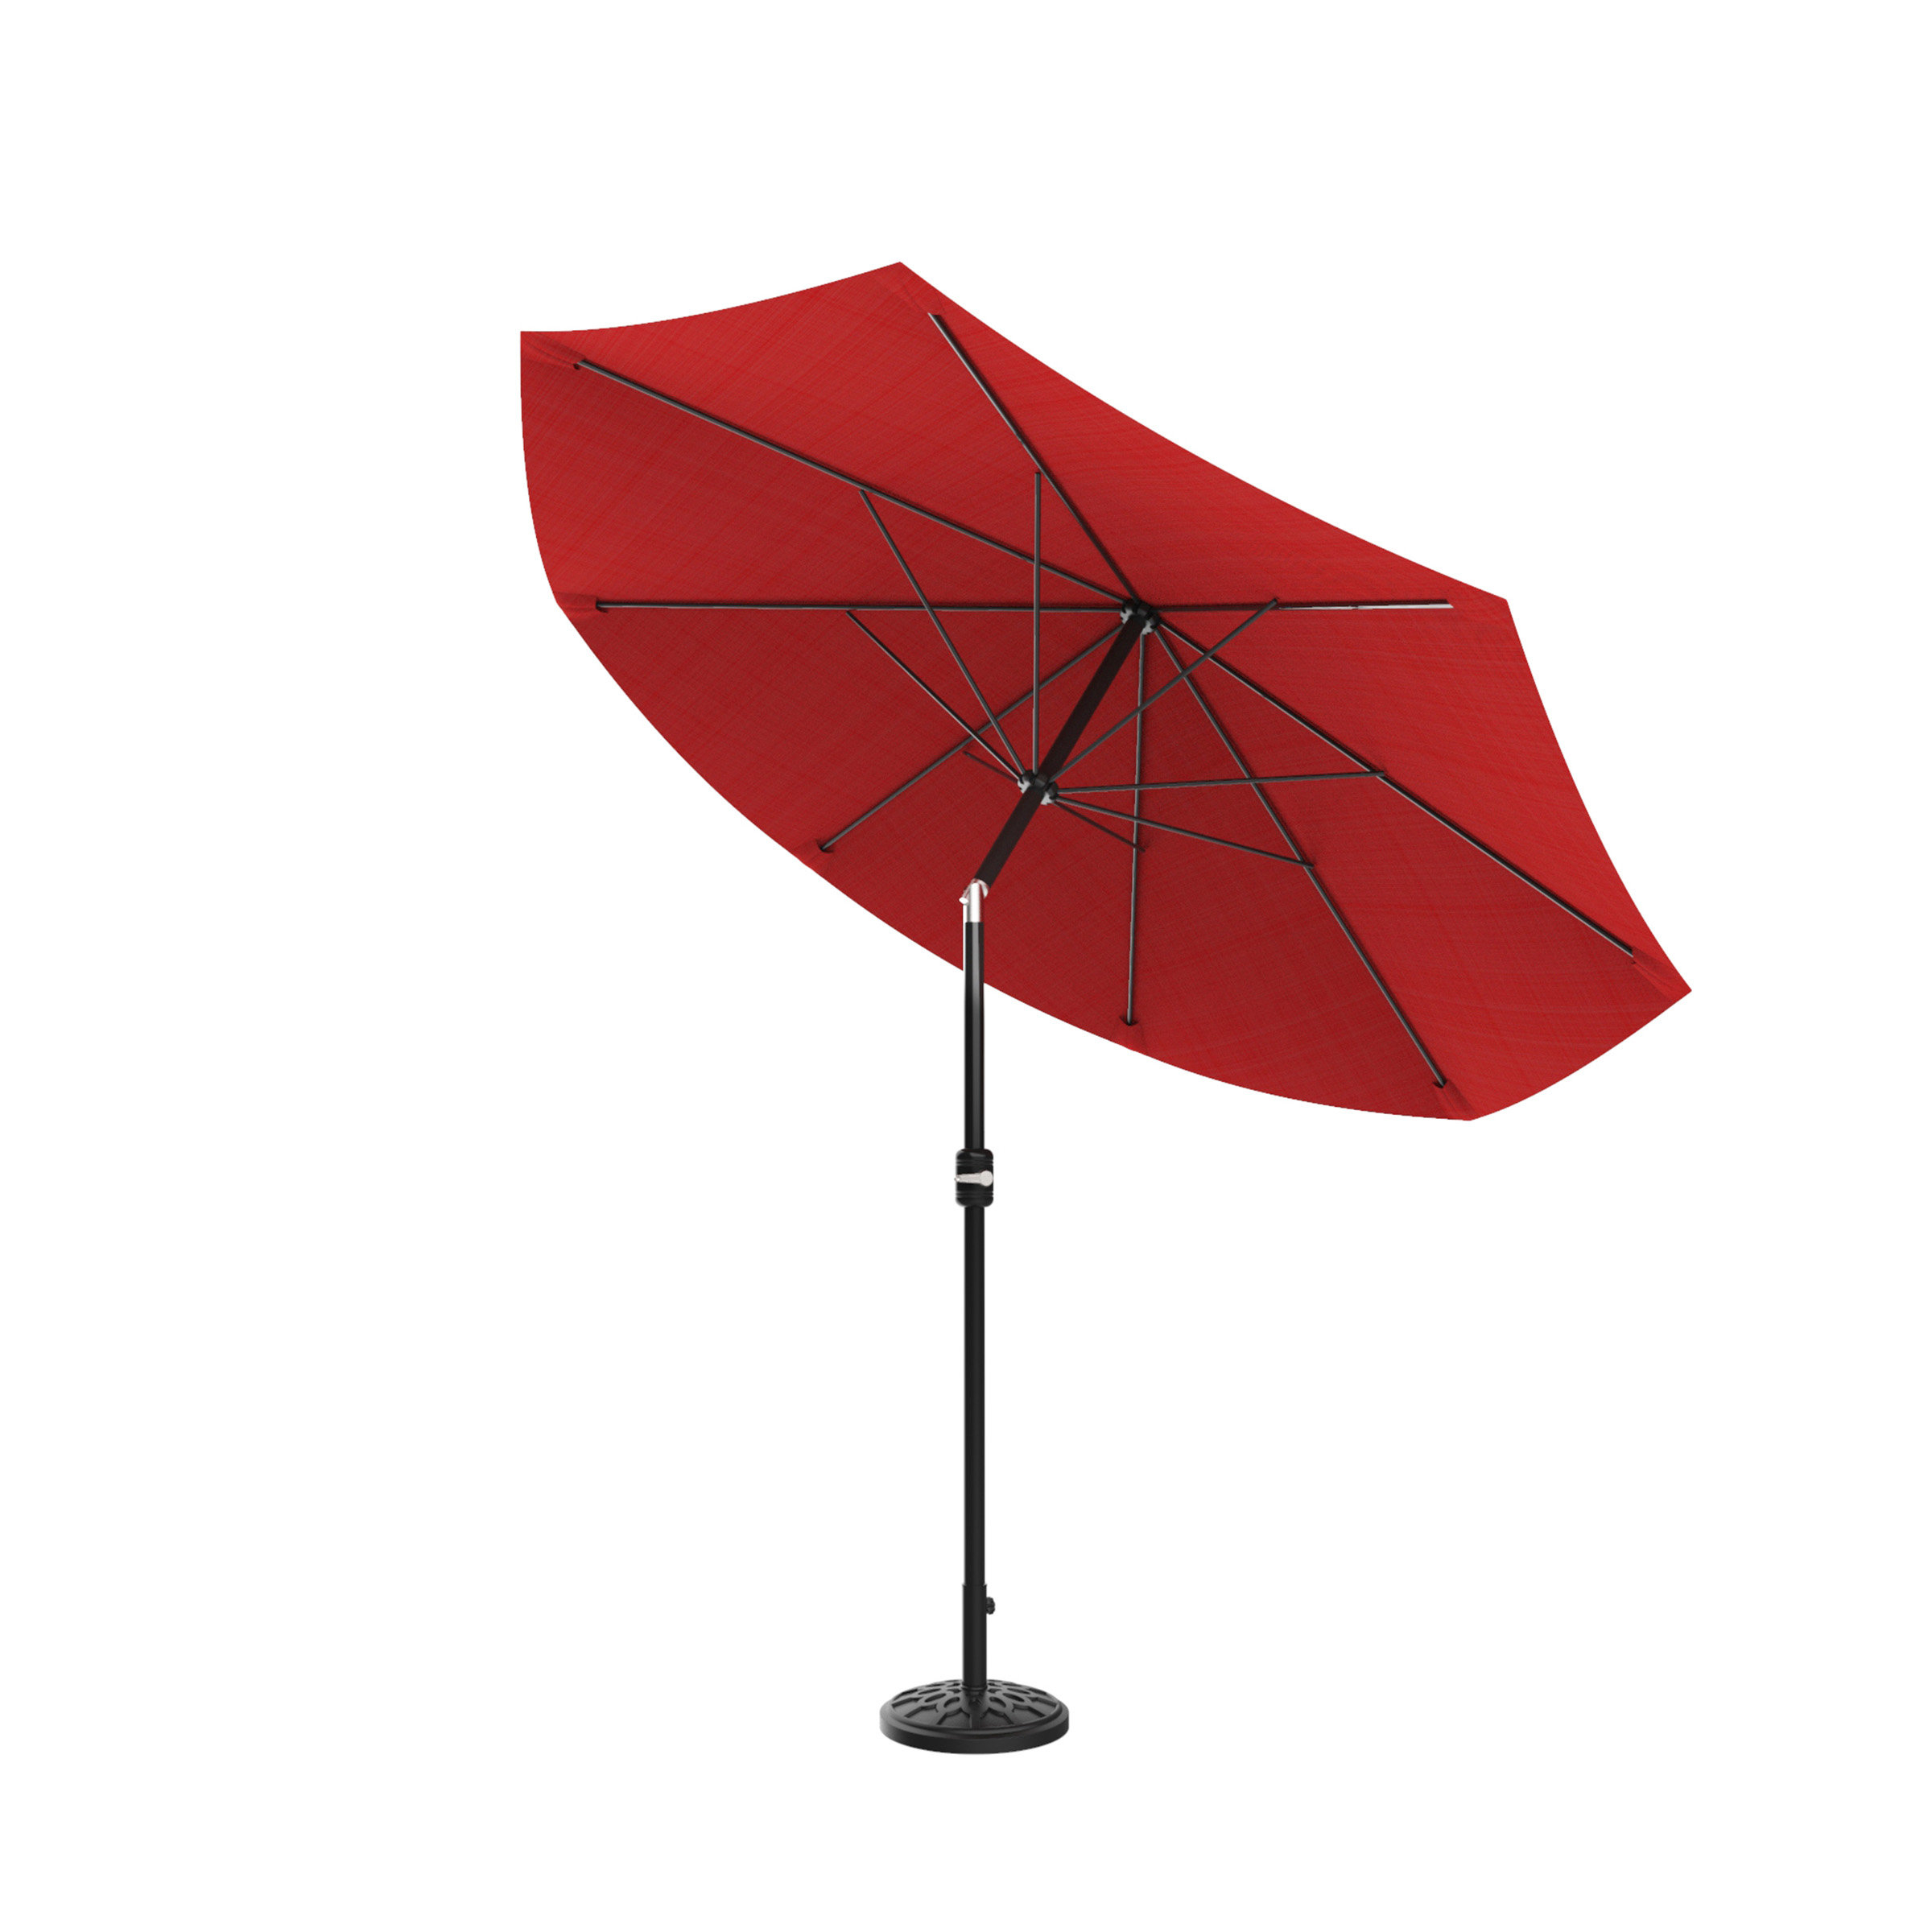 Kelton Market Umbrellas For Best And Newest Beachcrest Home Kelton 10' Market Umbrella (Gallery 6 of 20)